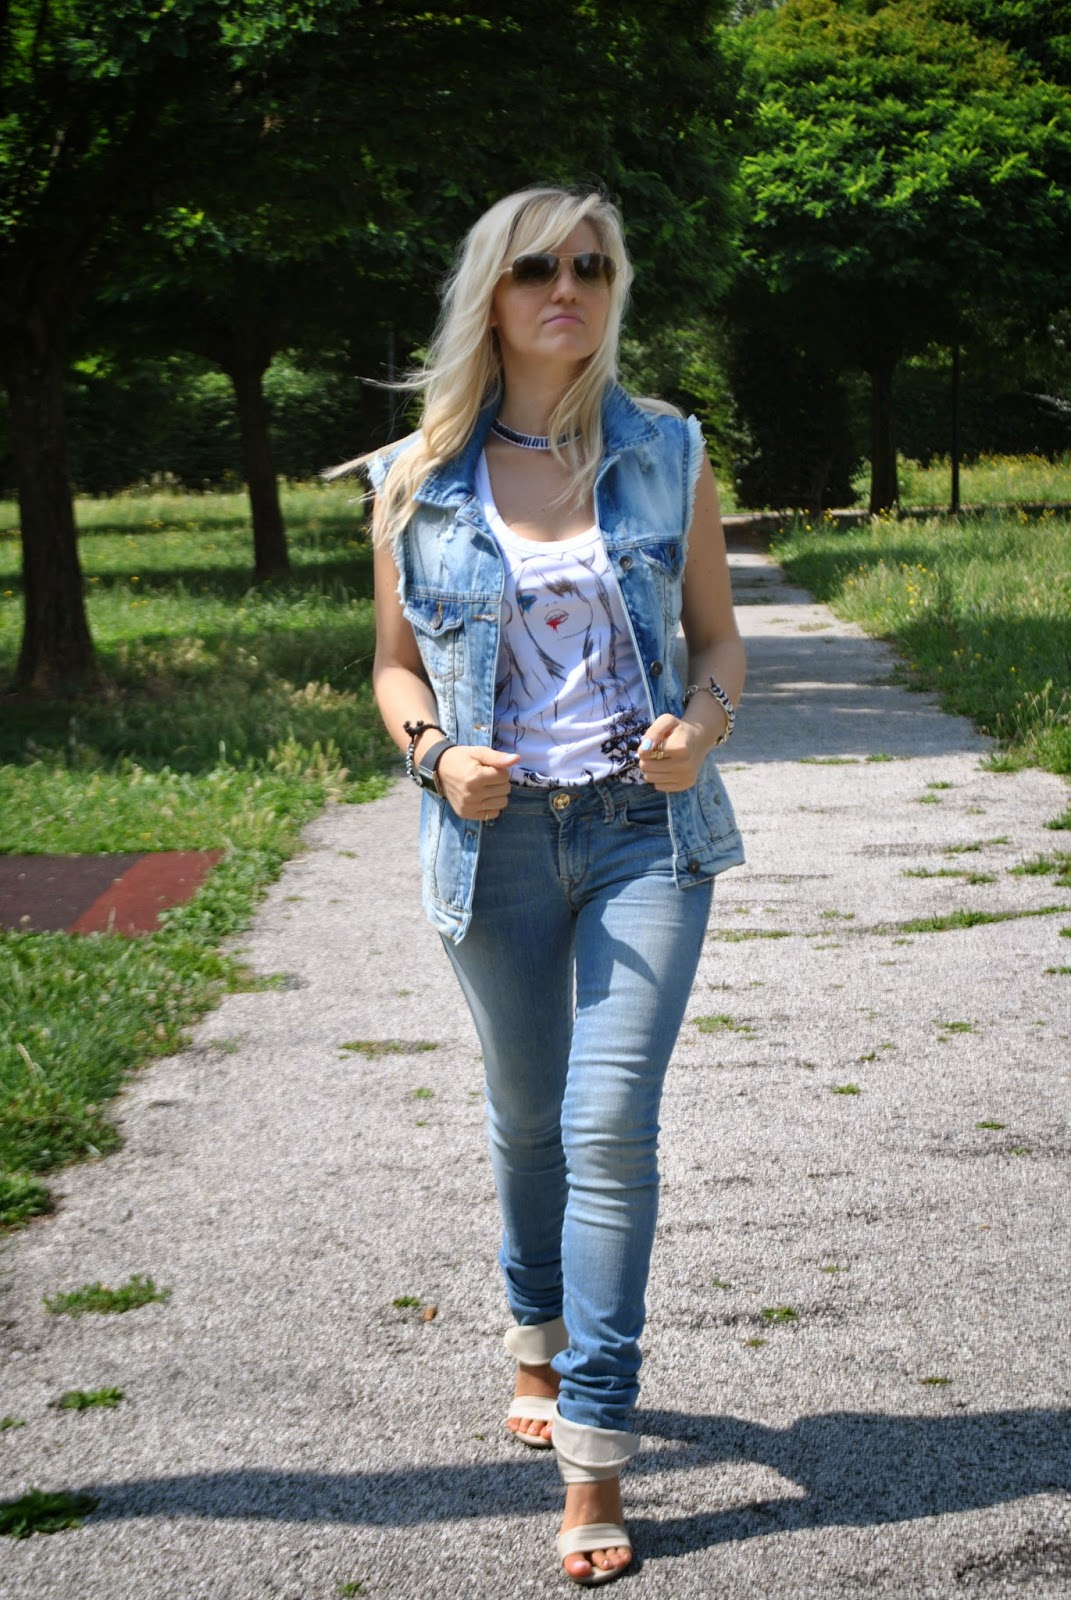 outfit in denim skinny jeans e gilet in denim destroyed maglia fornarina sandali in pelle con tacco a virgola fornarina jeans skinny botton up di fornarina orologio avatar by zoppin anelli scritta love anelli majique occhiali da sole ray ban fashion blogger italiane outfit tacchi e jeans outfit jeans e tacchi  colorblock by felym outfit di mariafelicia magno fashion blogger di colorblock by felym outfit di mariafelicia magno fashion blogger di colorblock by felym outfit giugno 2014 outfit estate 2014 outfit estivi outfit majique moda fashion ragazze bionde fashion blogger bionde